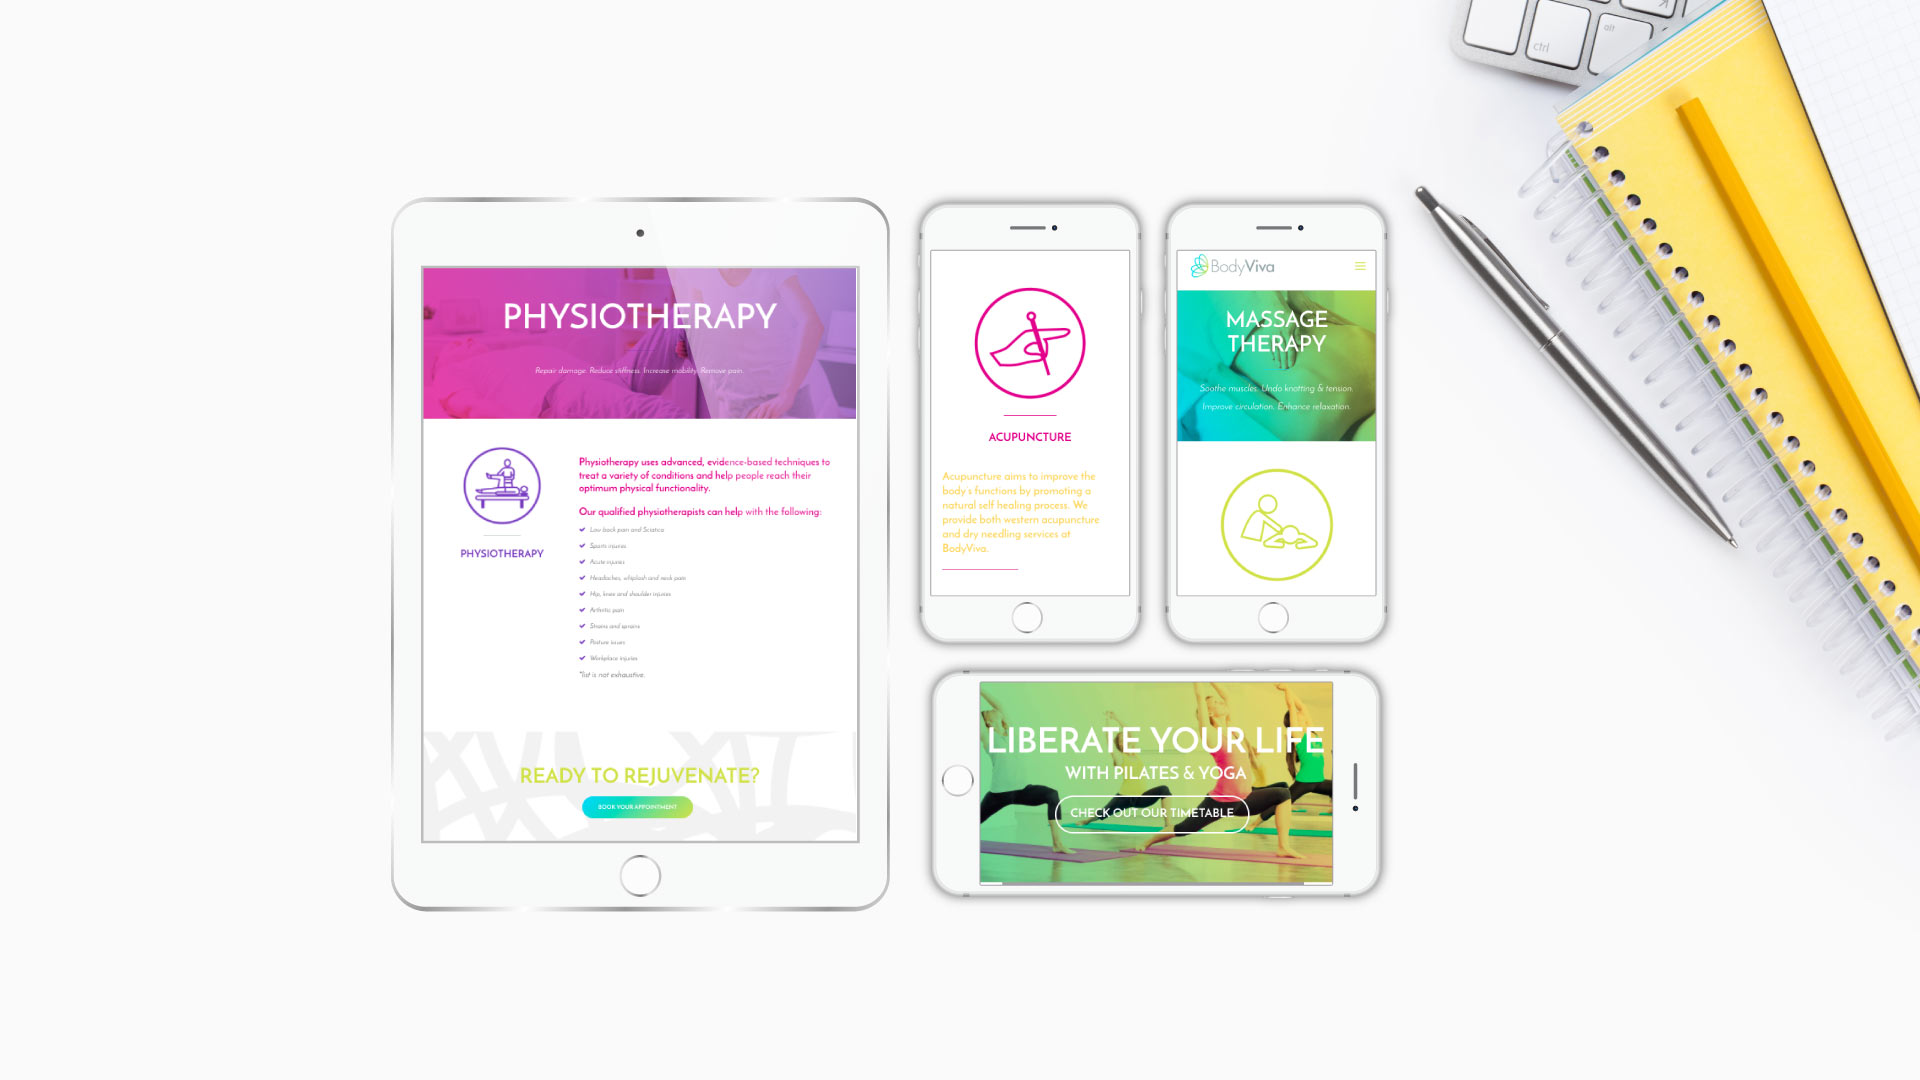 BodyViva-ipad-iphone-responsive-branding-ronin-digital-marketing-client